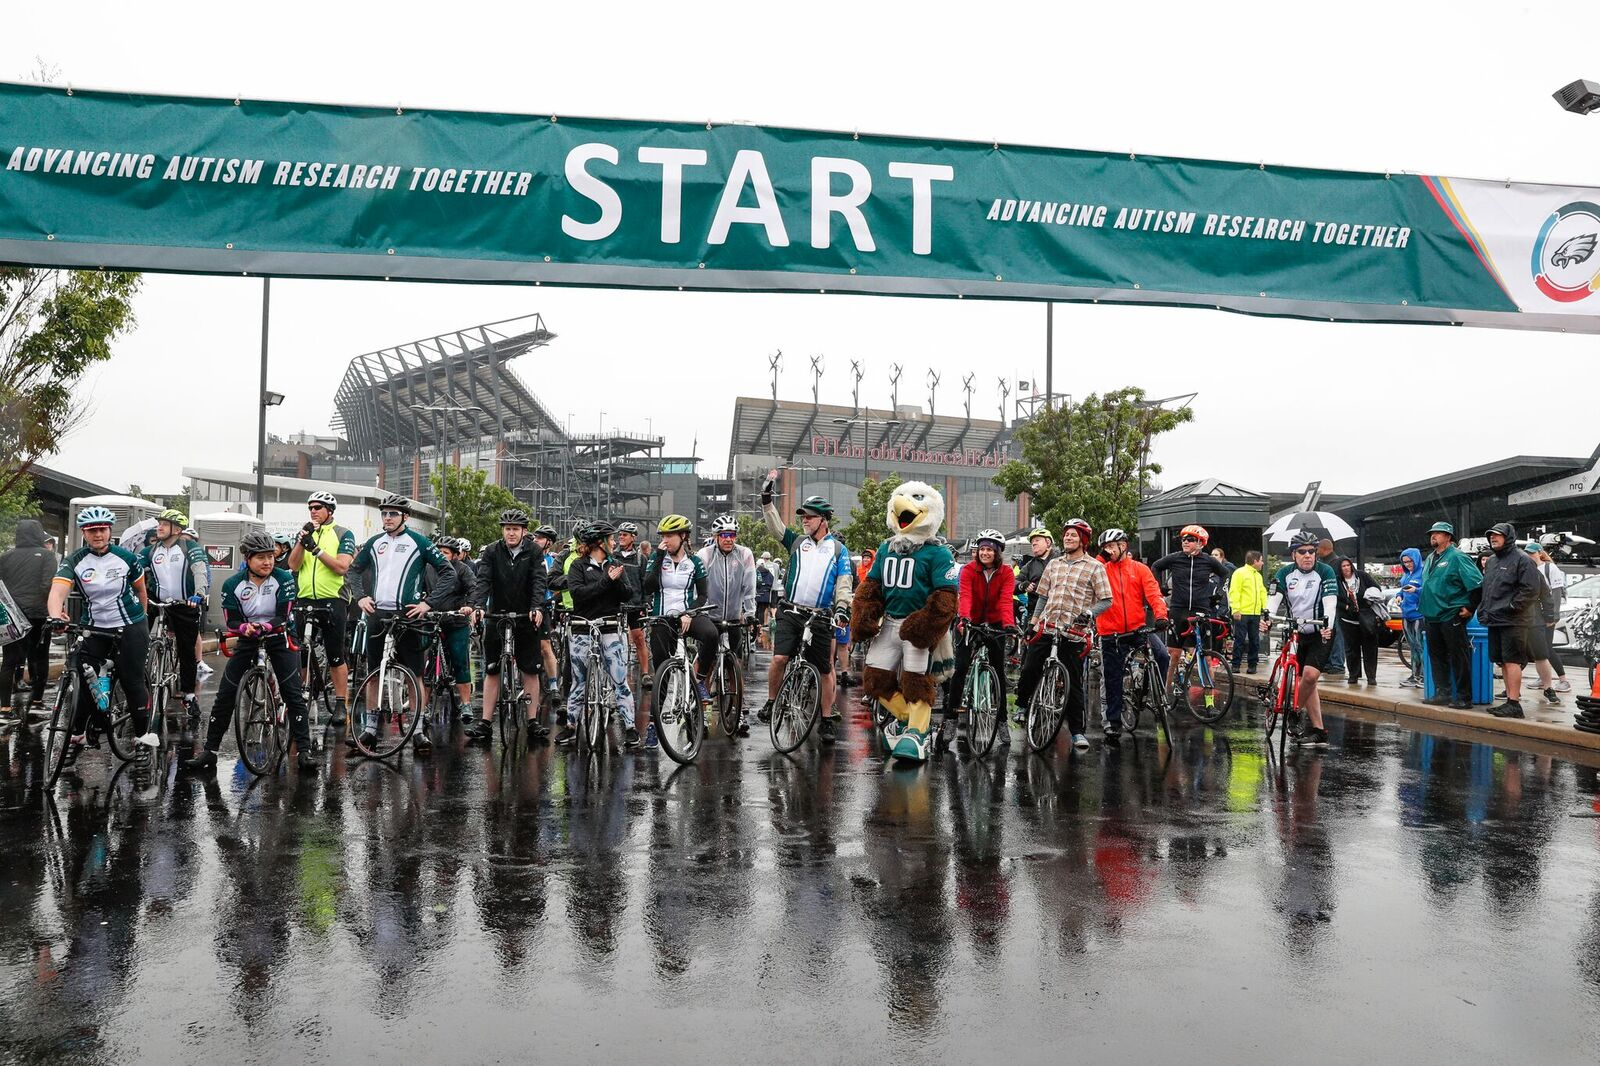 Second annual Eagles Autism Challenge at Lincoln Financial Field Friday